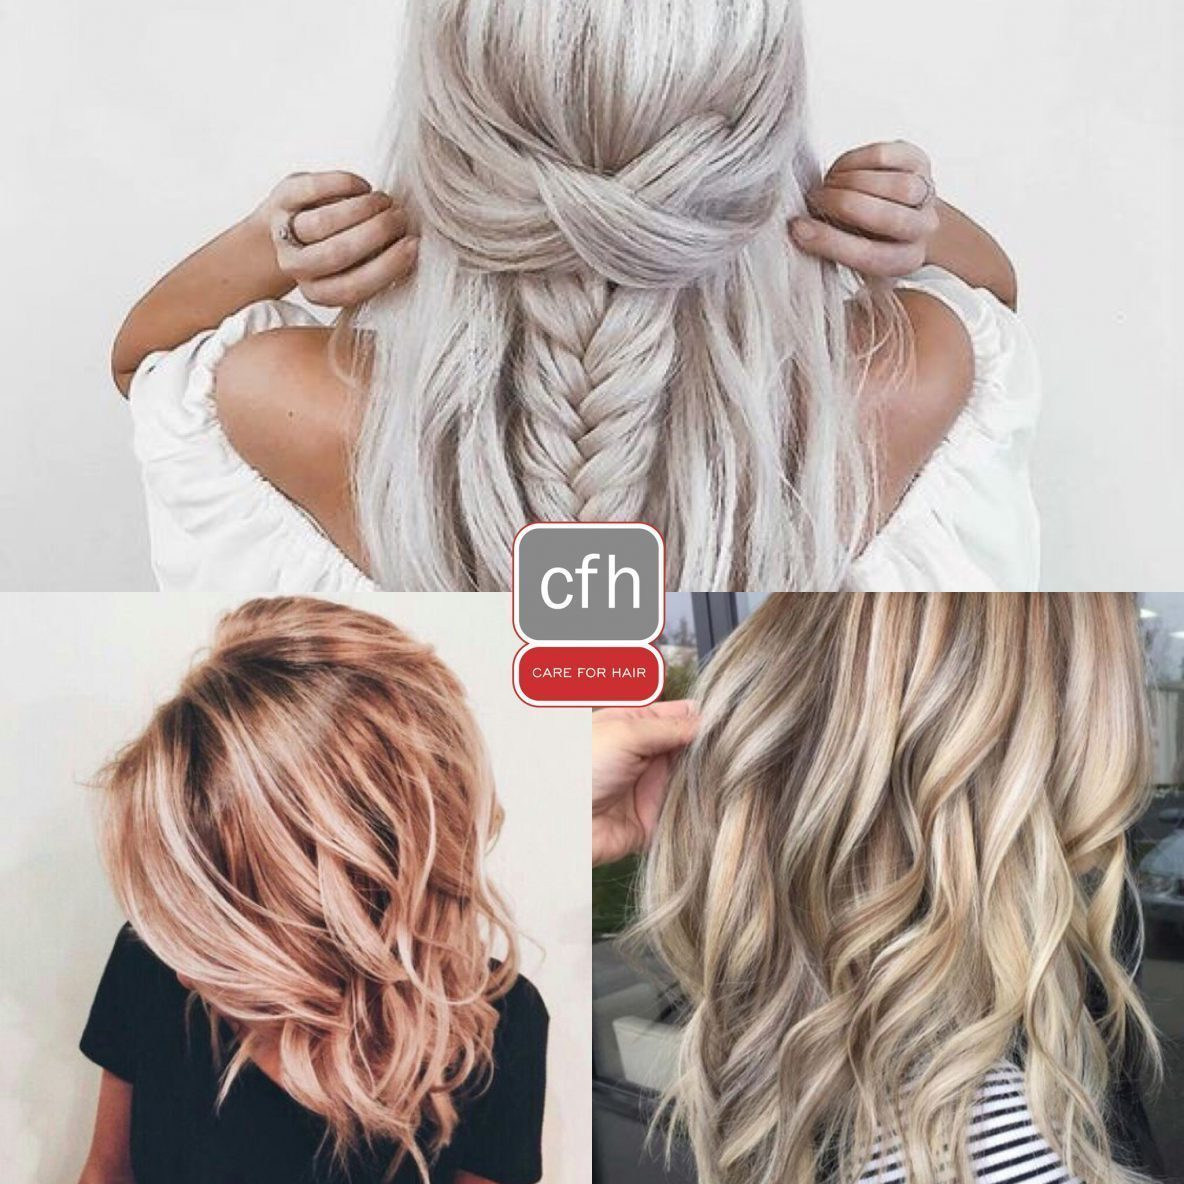 CFH Care For Hair Blog Bond, blonder, blondst